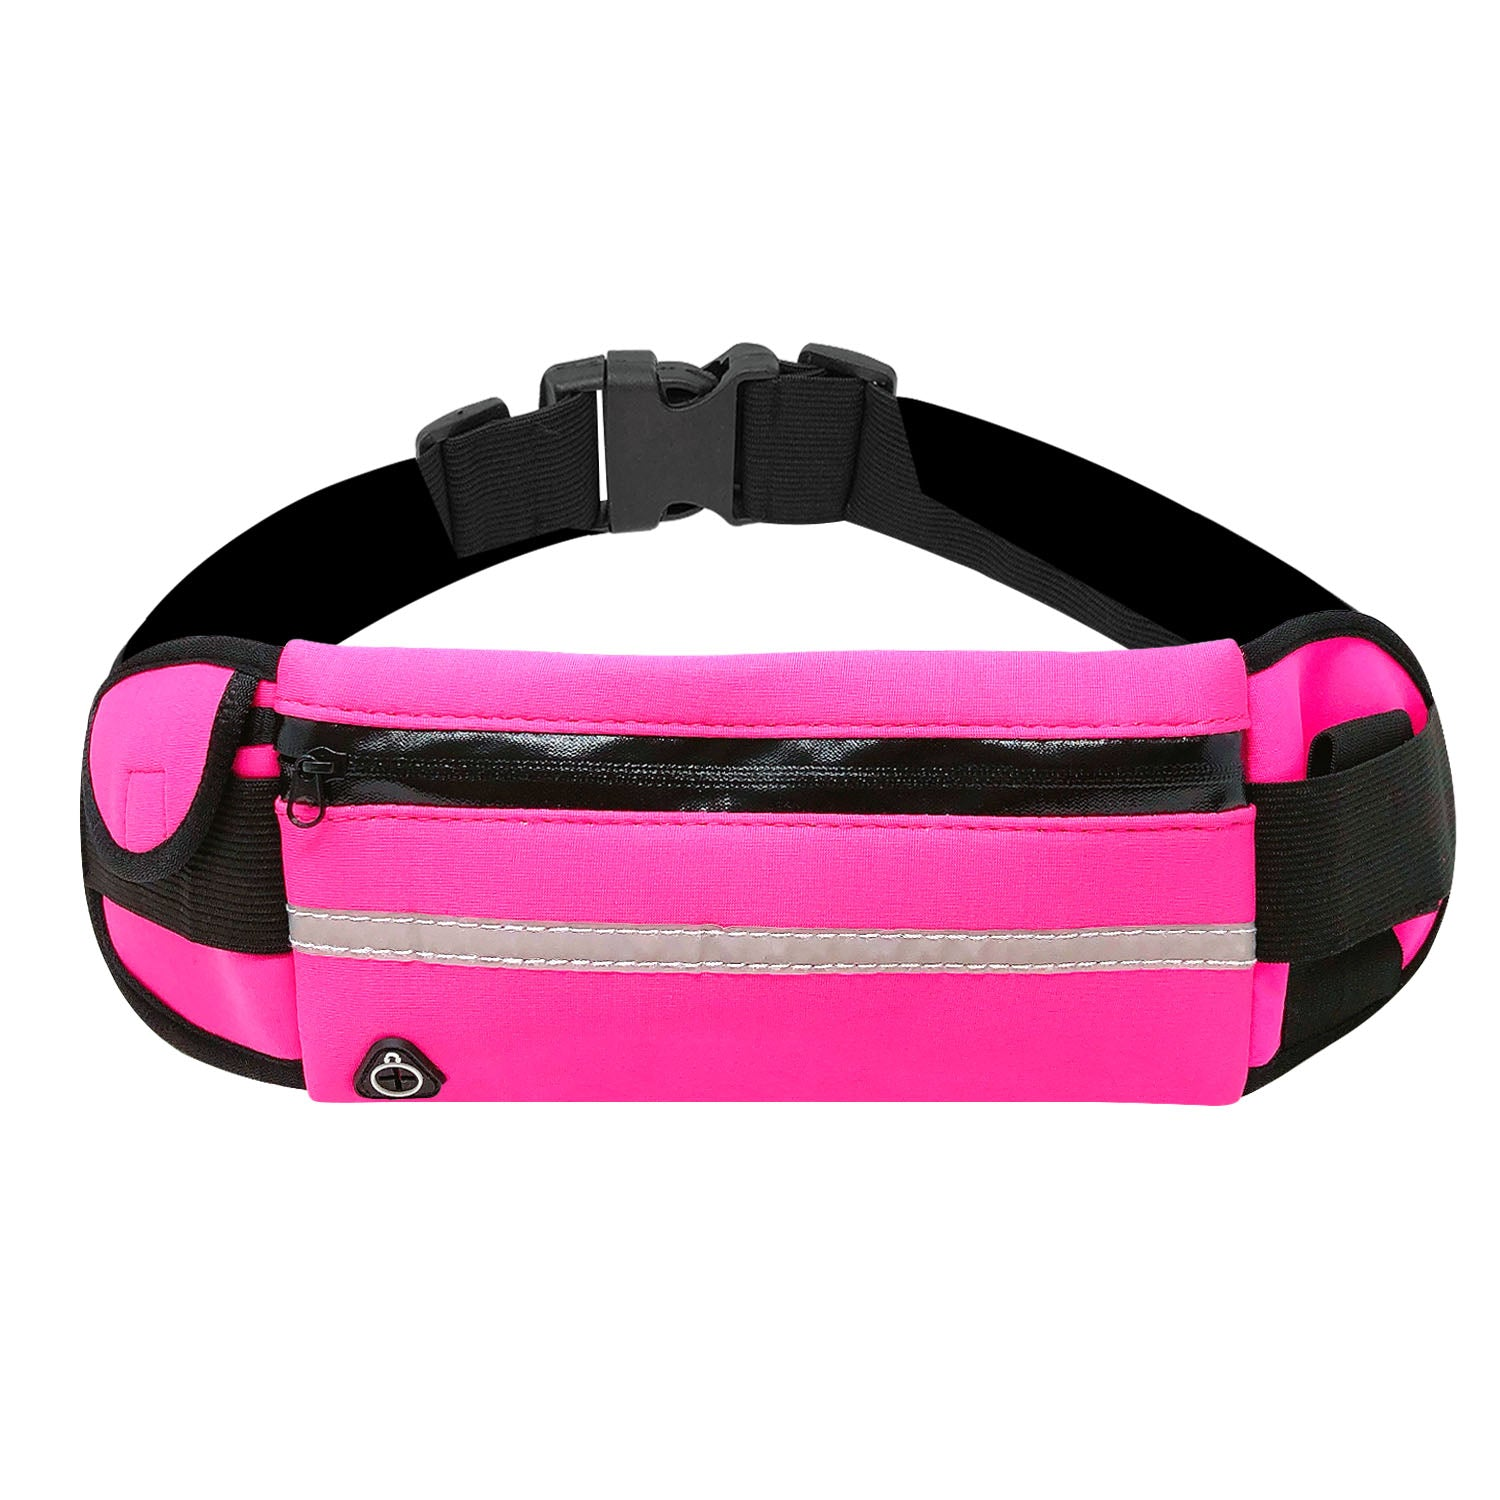 Wrapables Adjustable Neoprene Running Belt, Waterproof Fanny Pack, Workout Pouch for Running Jogging Hiking